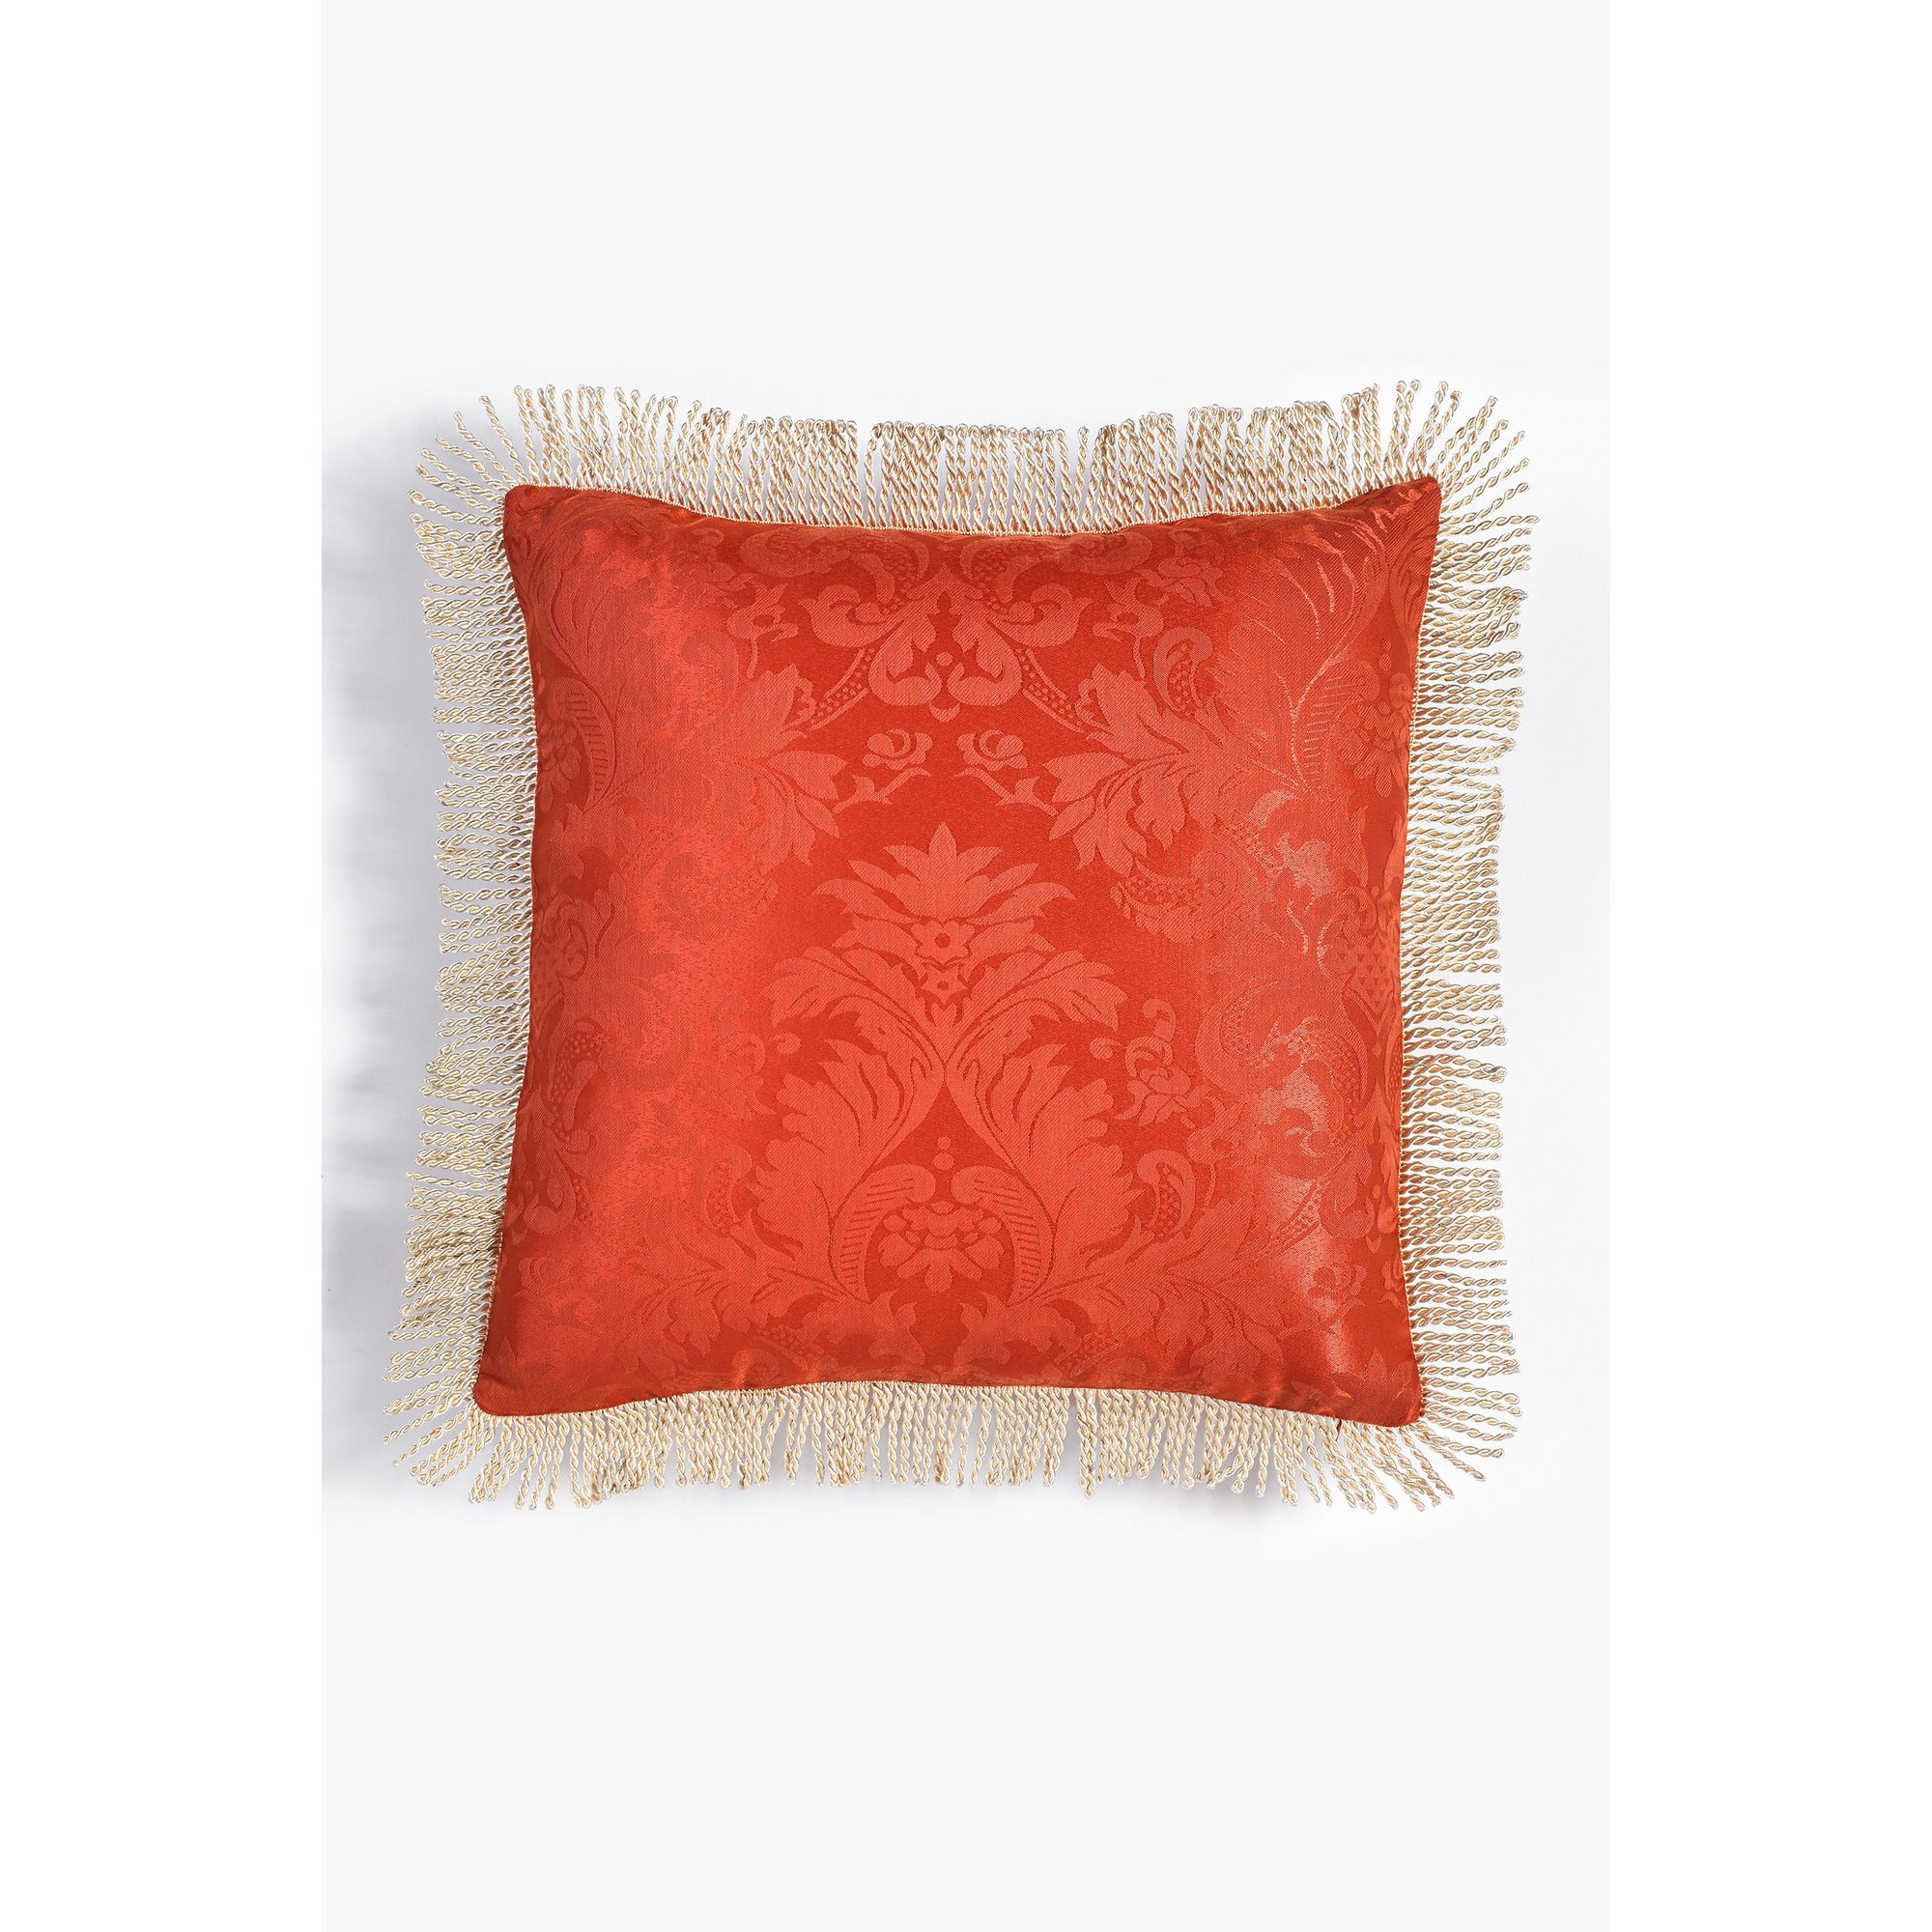 Image of Ascot Damask Fringed Filled Cushion